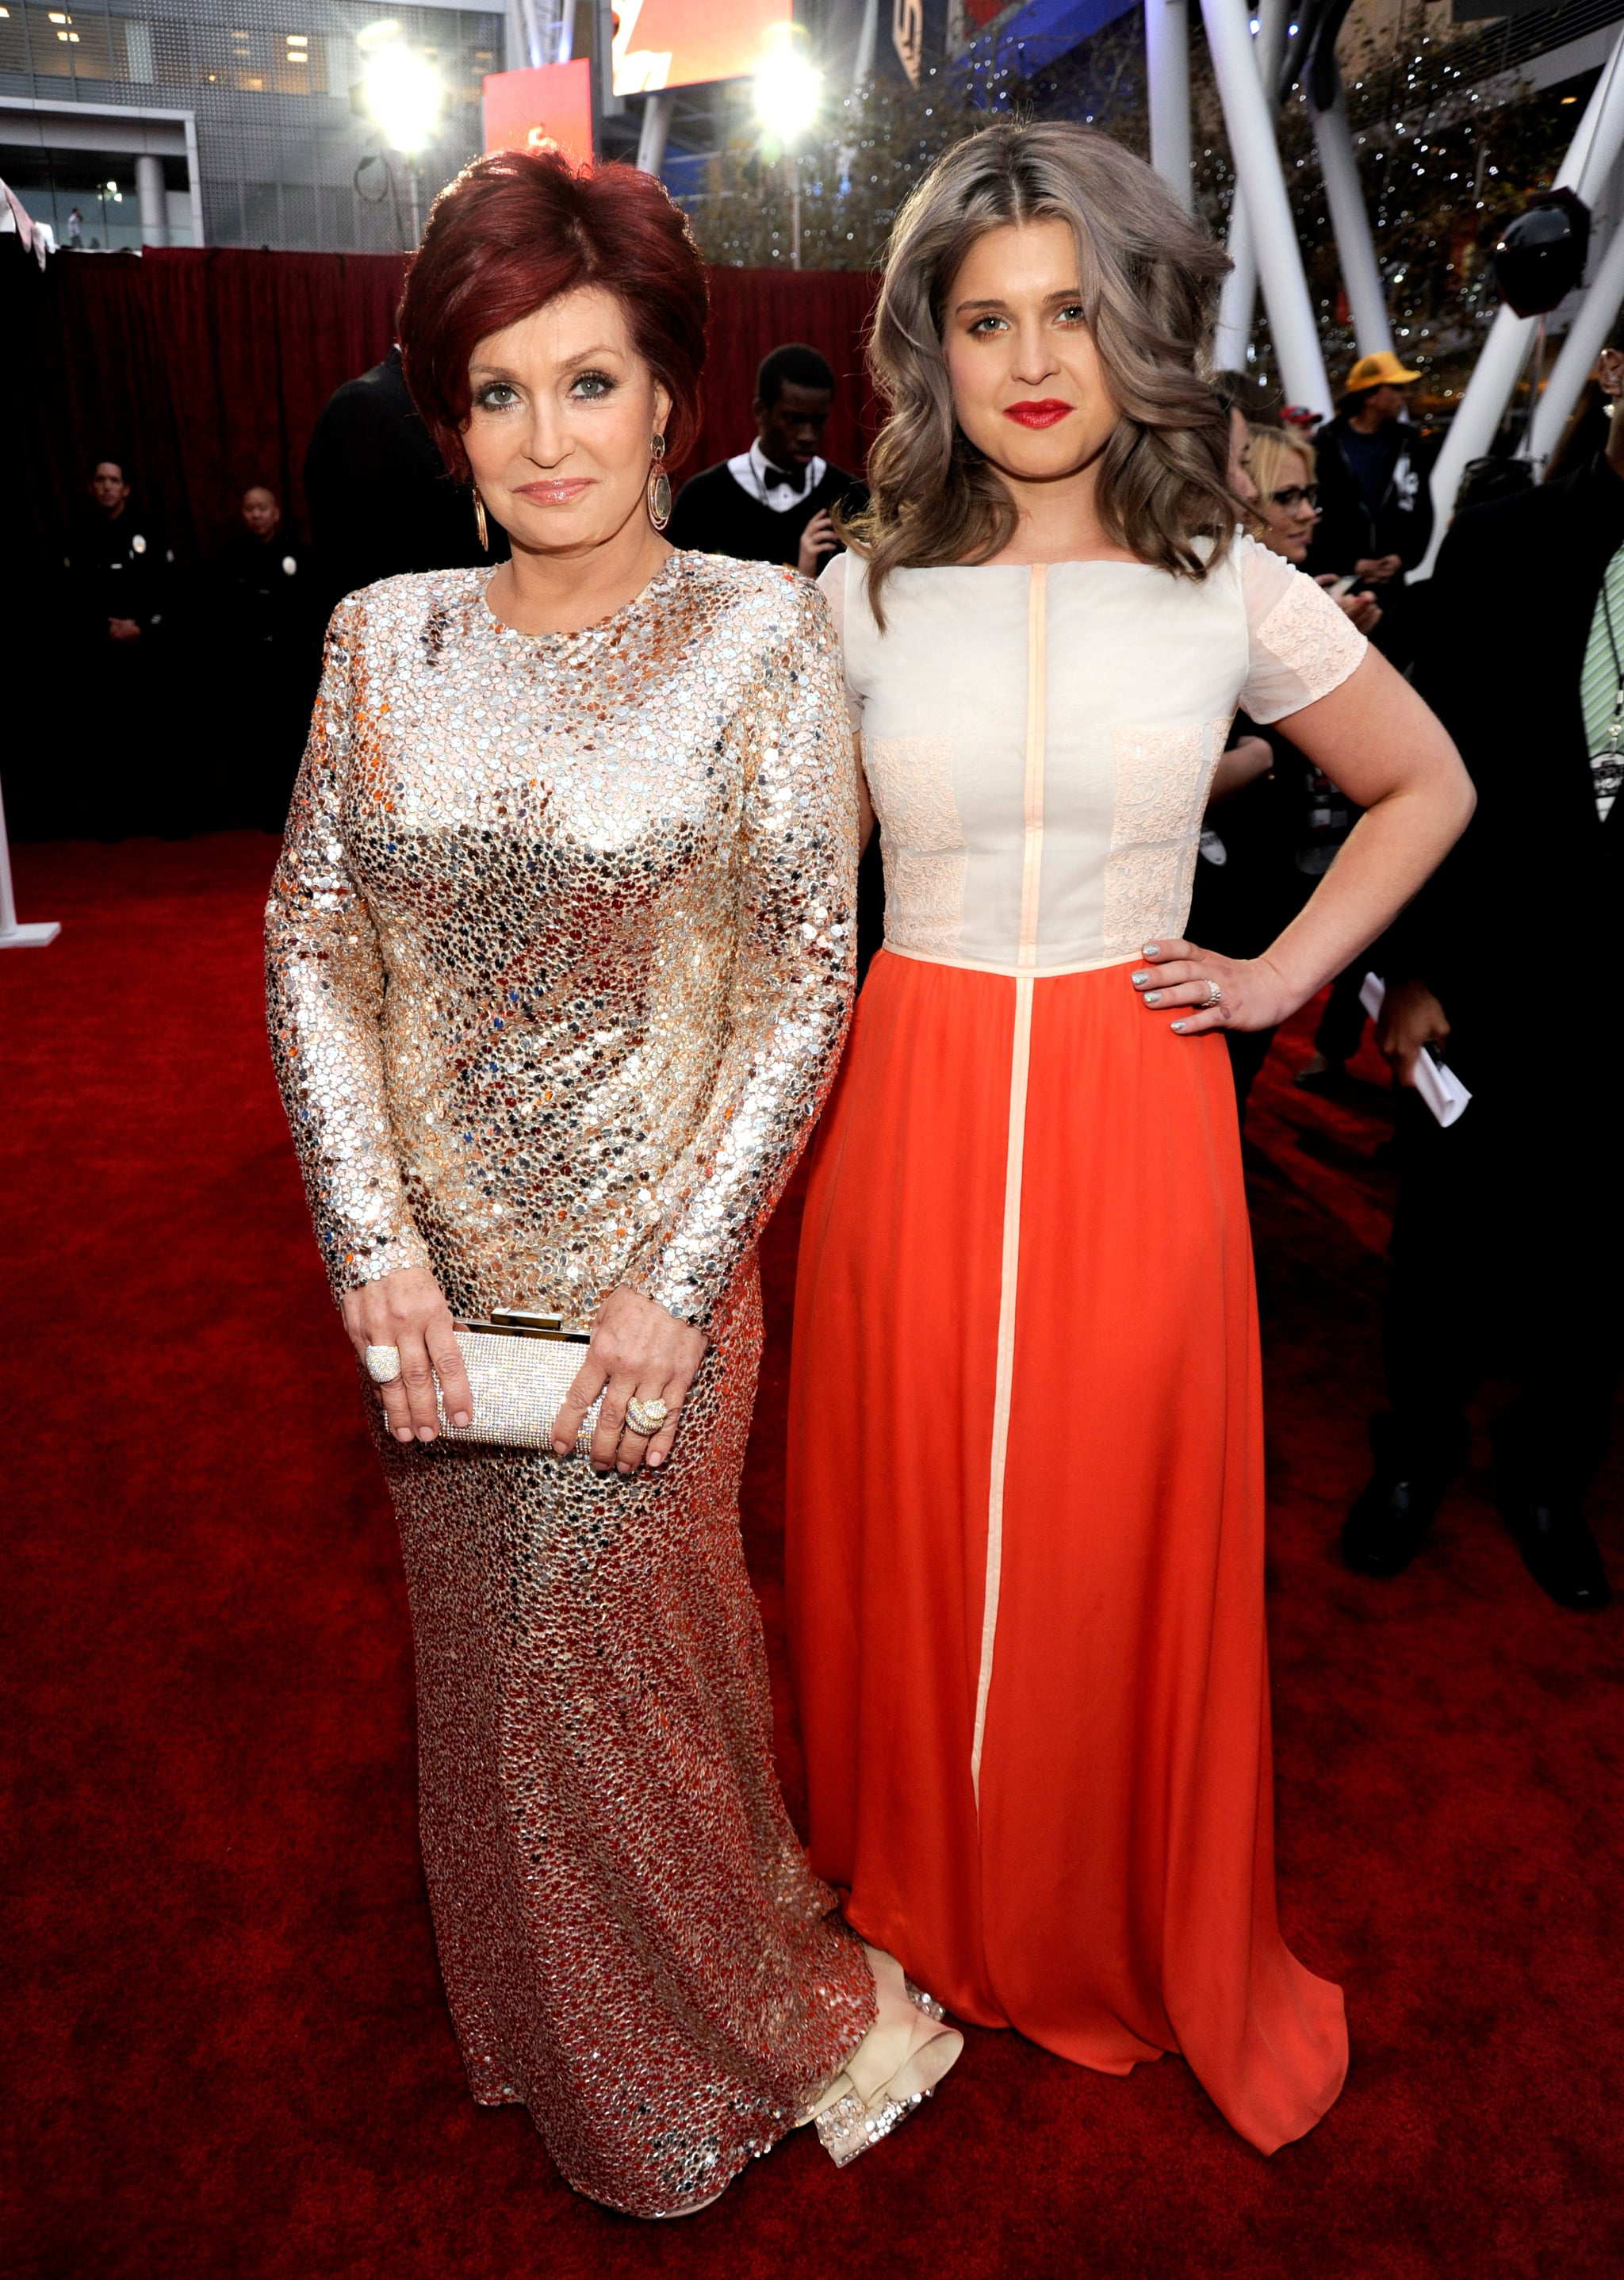 Sharon and Kelly Osbourne at the 2012 People's Choice Awards.